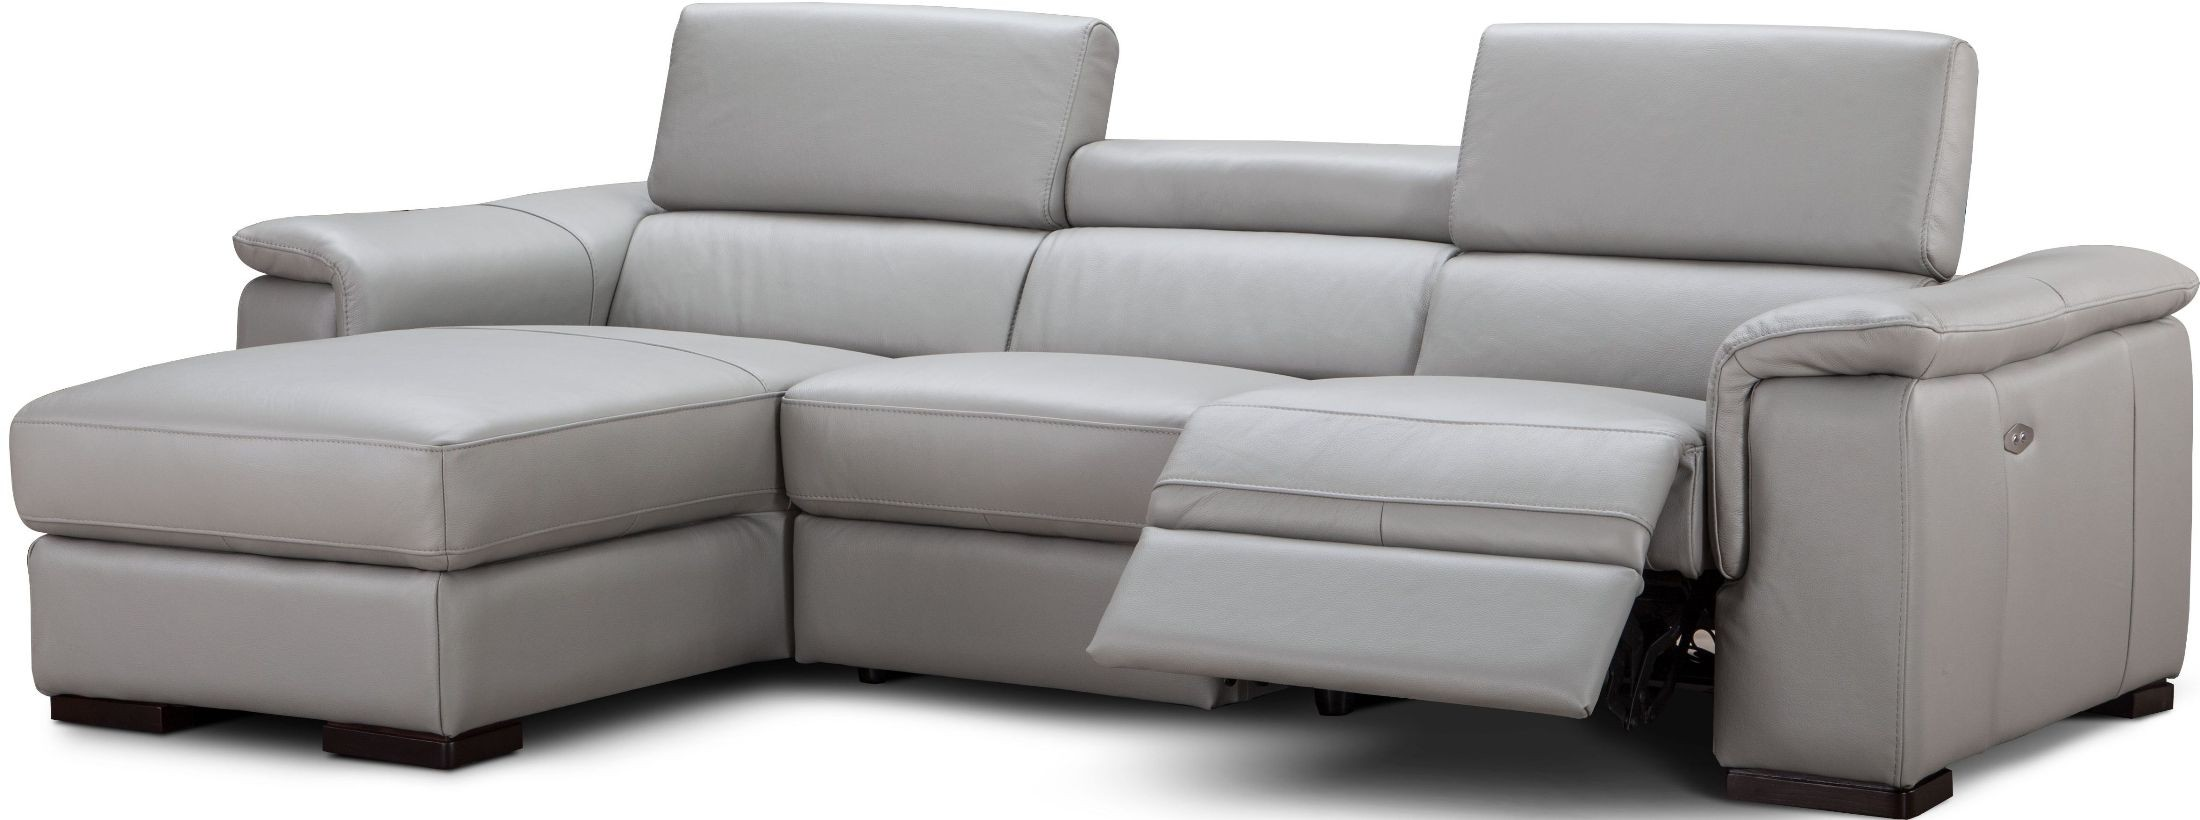 light gray leather reclining sofa l shaped outdoor uk alba premium power laf